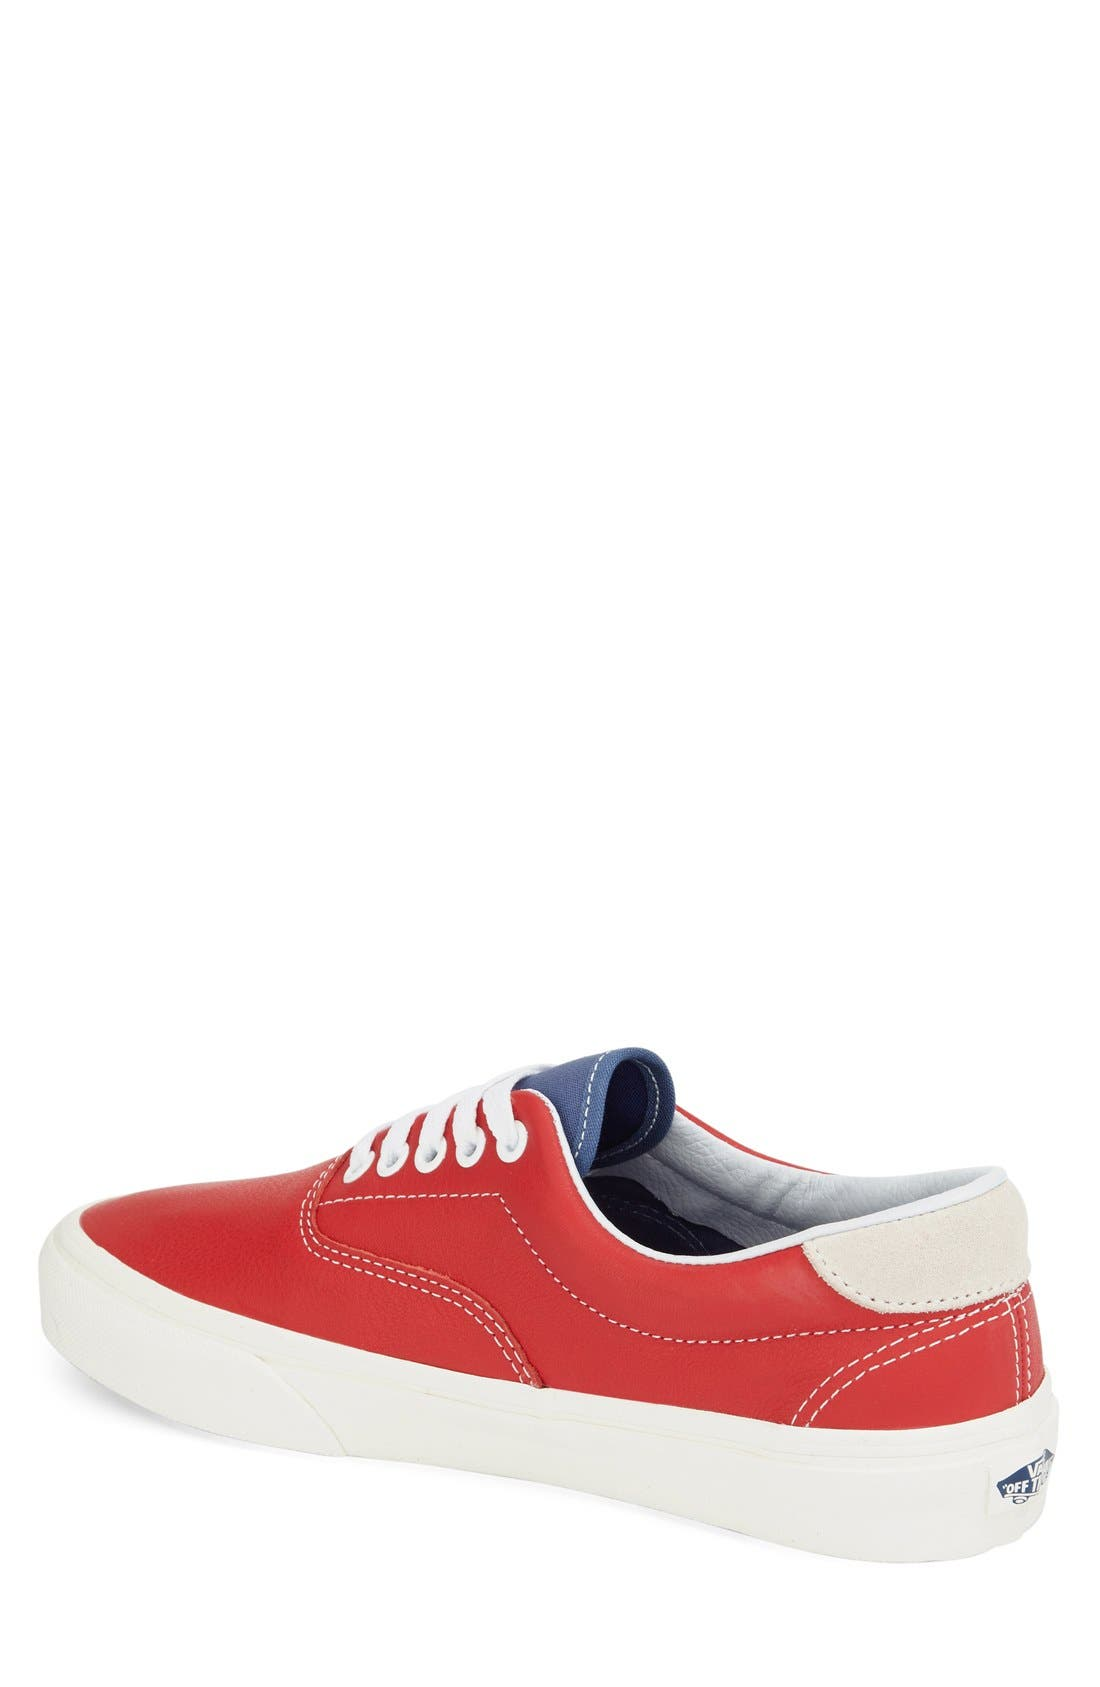 Alternate Image 2  - Vans 'Cali - Era 59' Sneaker (Men)